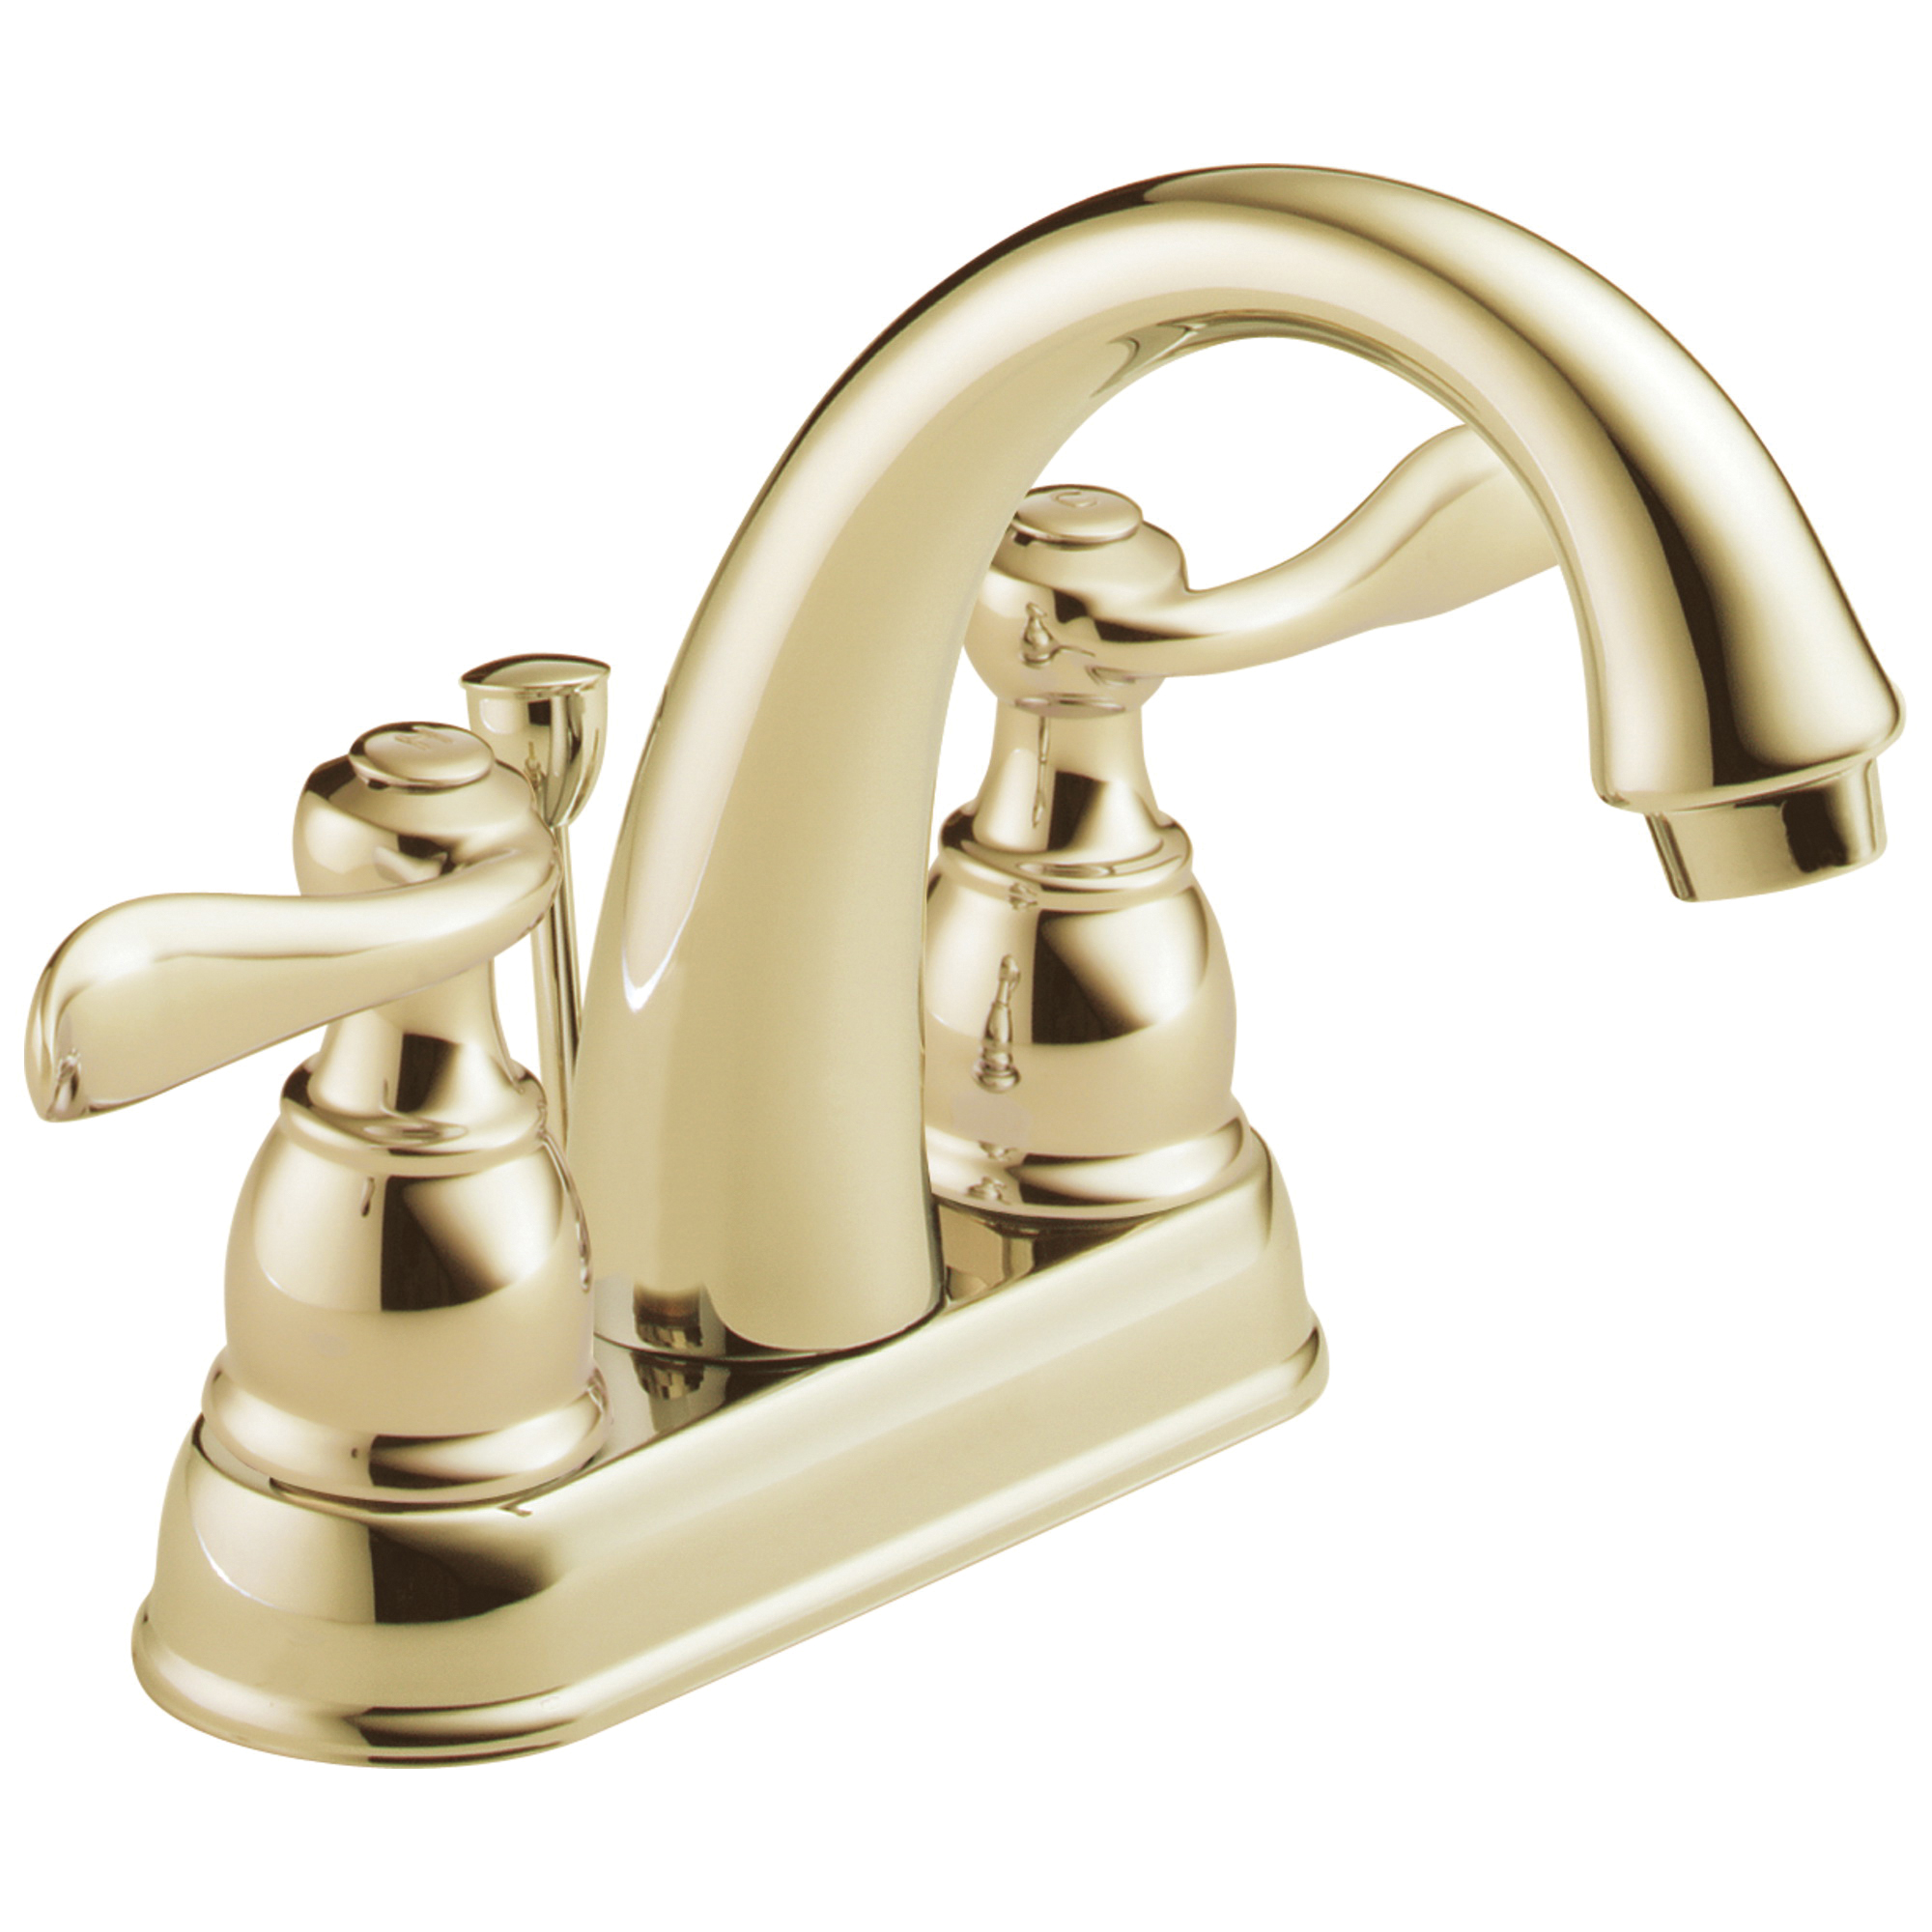 DELTA® B2596LF-PB Centerset Lavatory Faucet, Windemere®, Polished Brass, 2 Handles, Metal Pop-Up Drain, 1.2 gpm